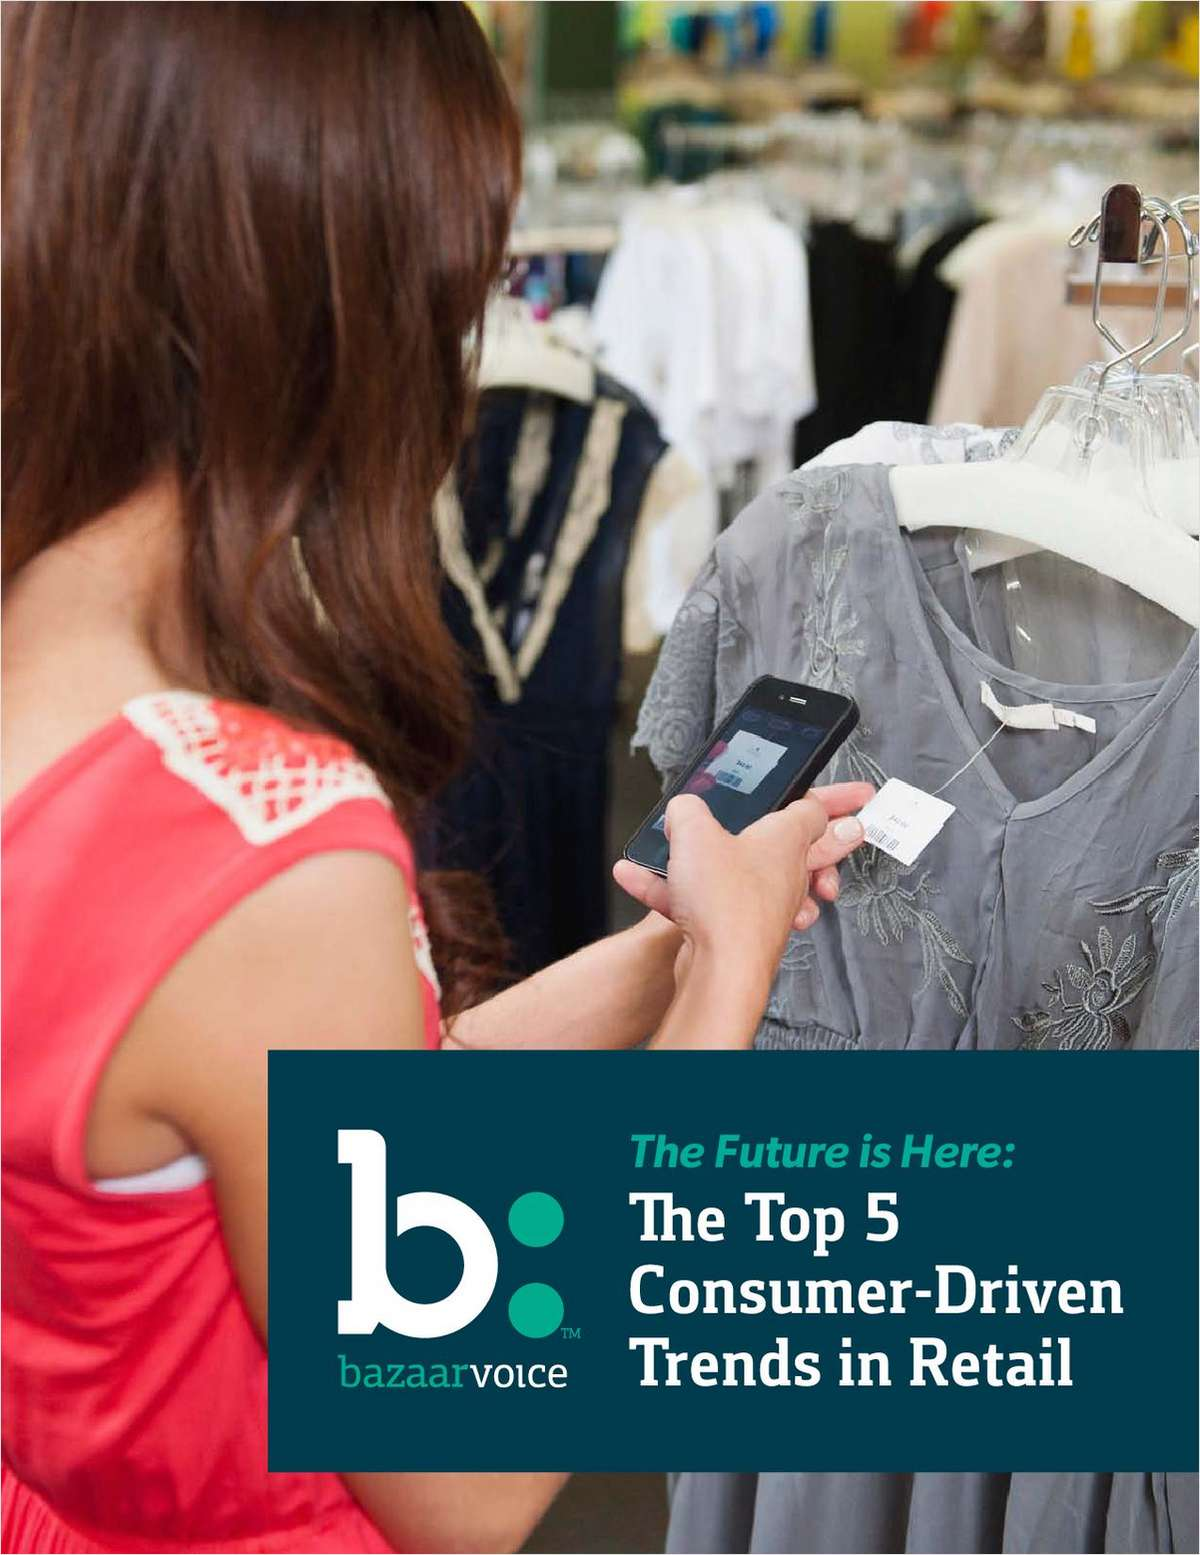 The Top 5 Consumer-Driven Trends in Retail